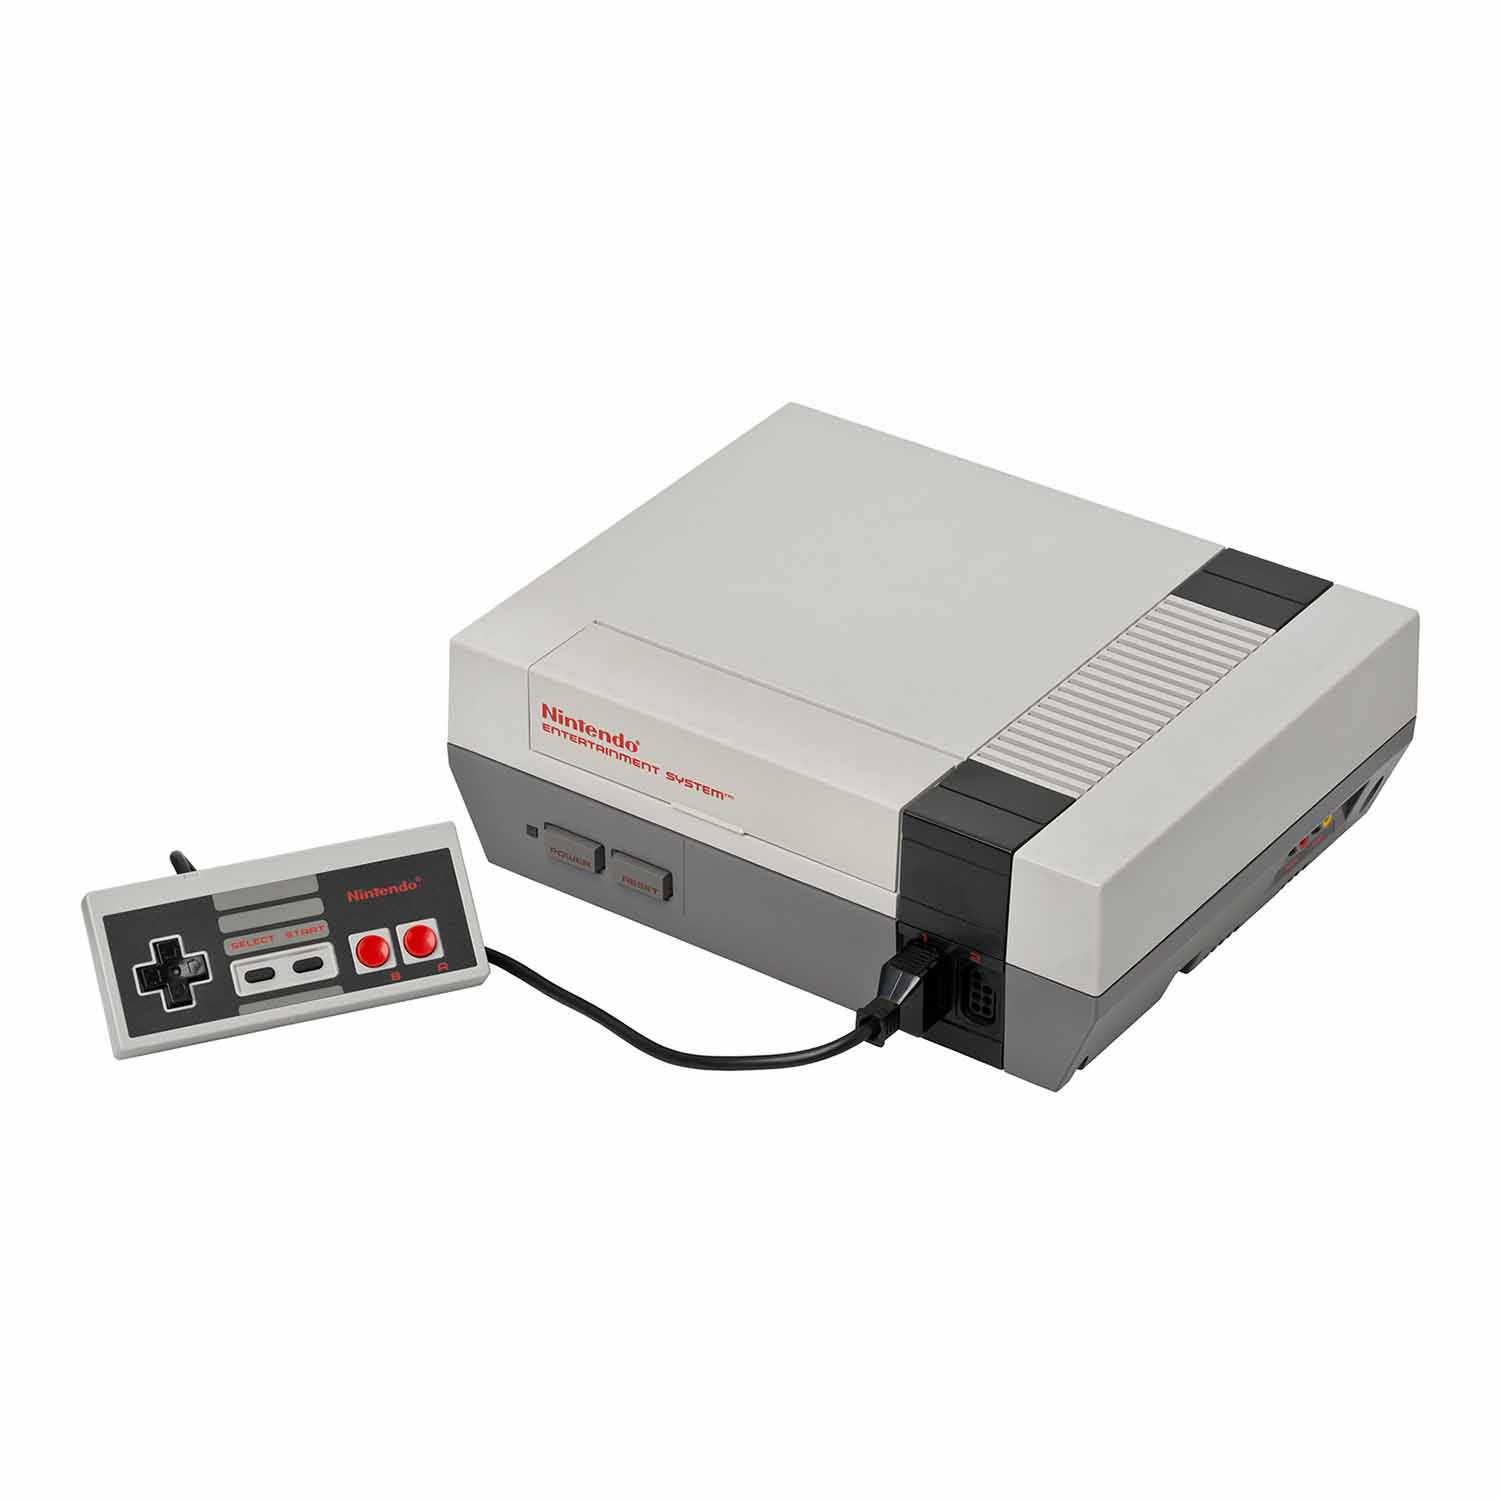 Nintendo Entertainment System: NES Classic Edition with 30 Pre-Loaded Games